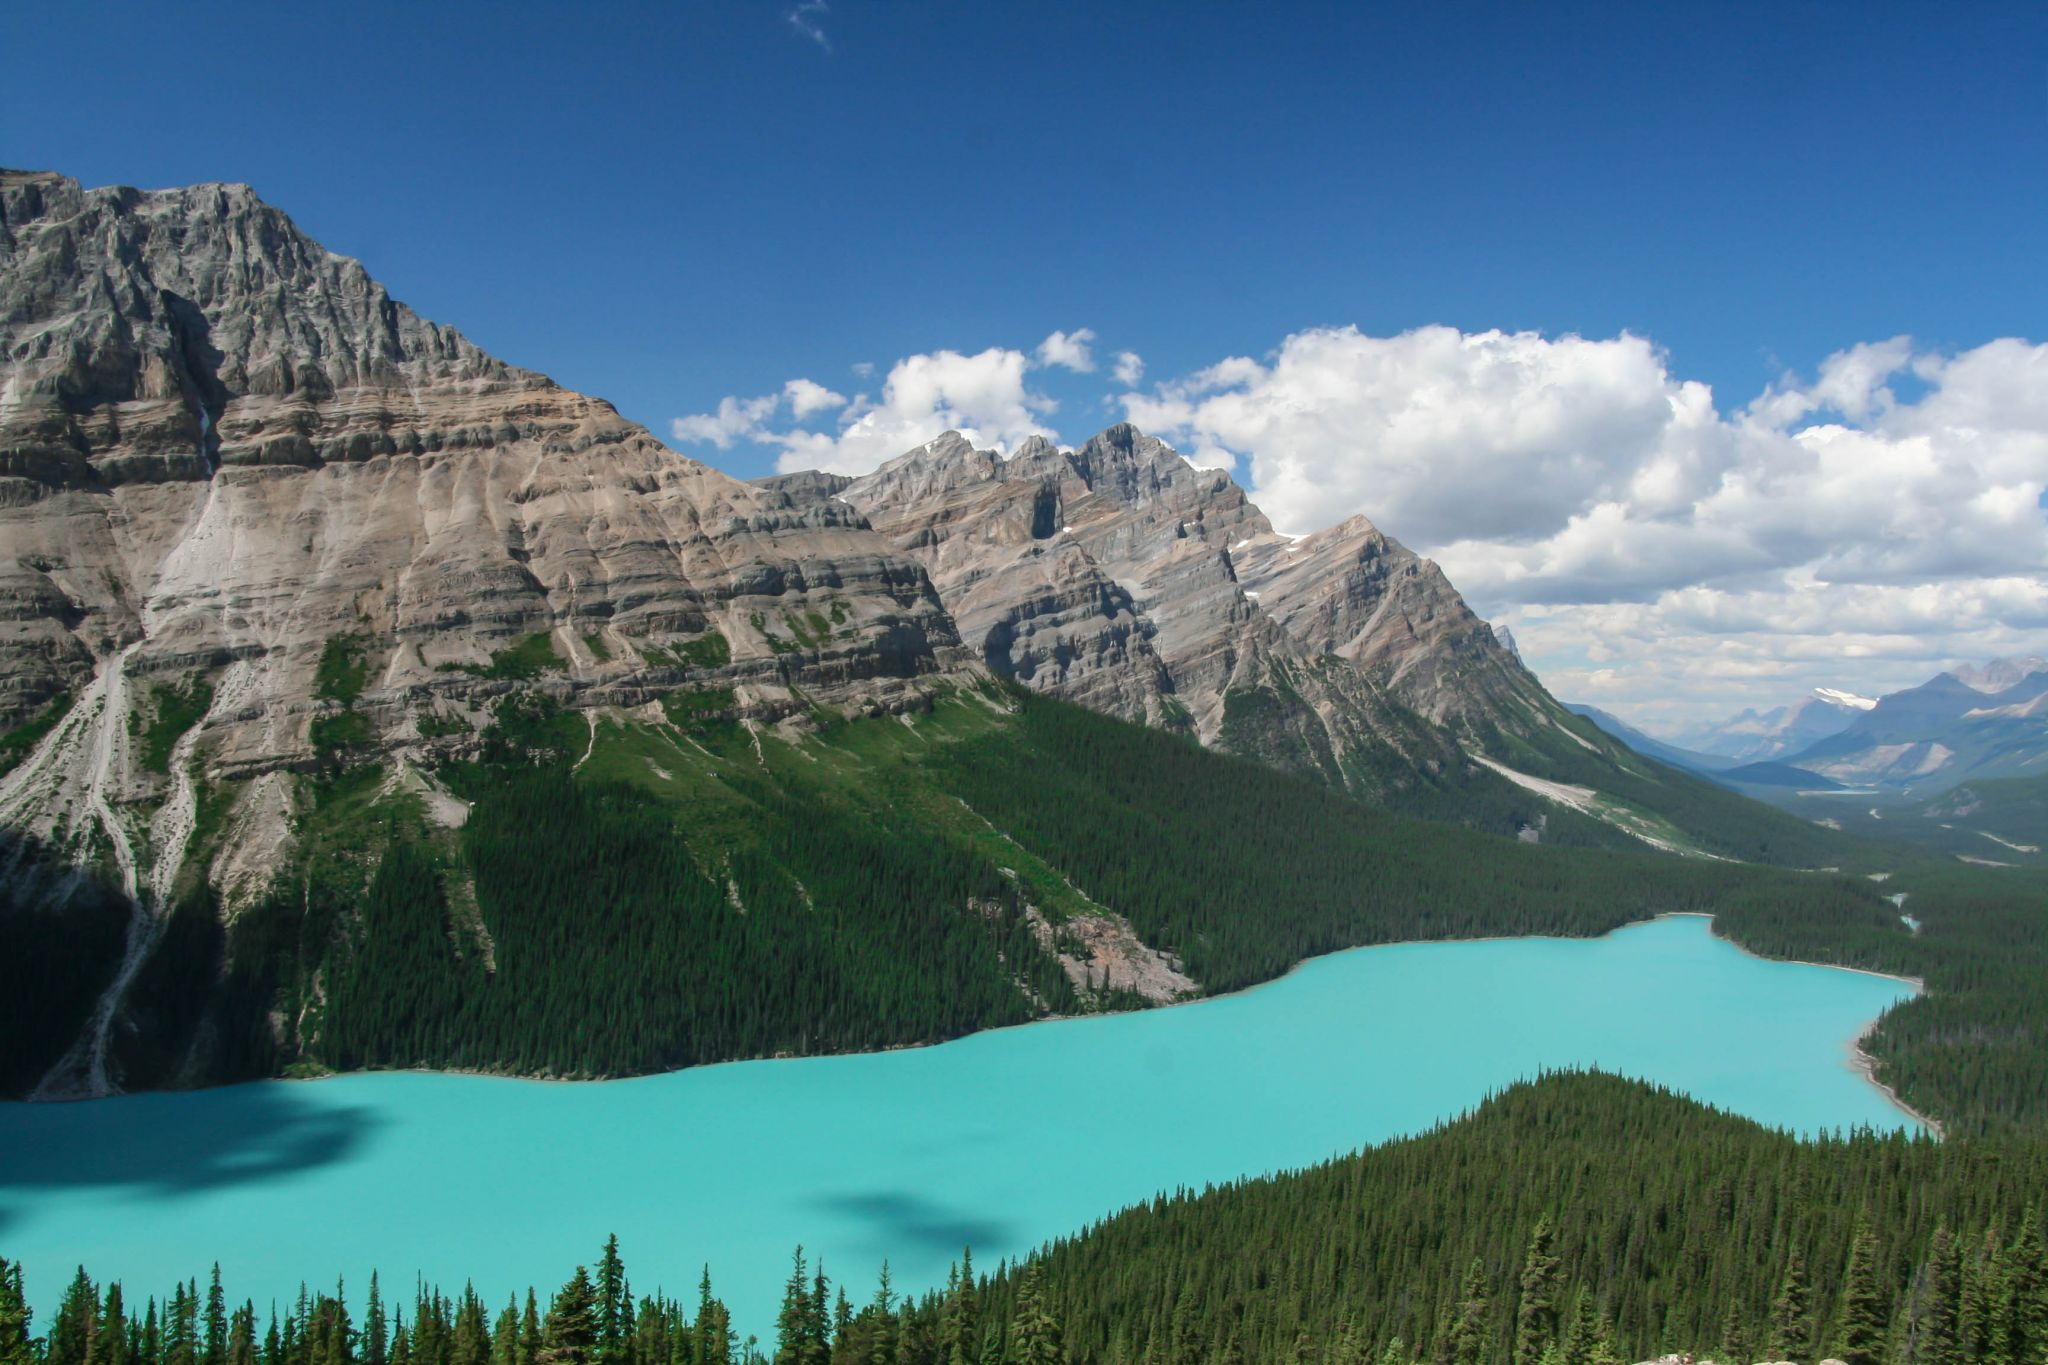 Peyto Lake Overview from Bow Summit, Canada